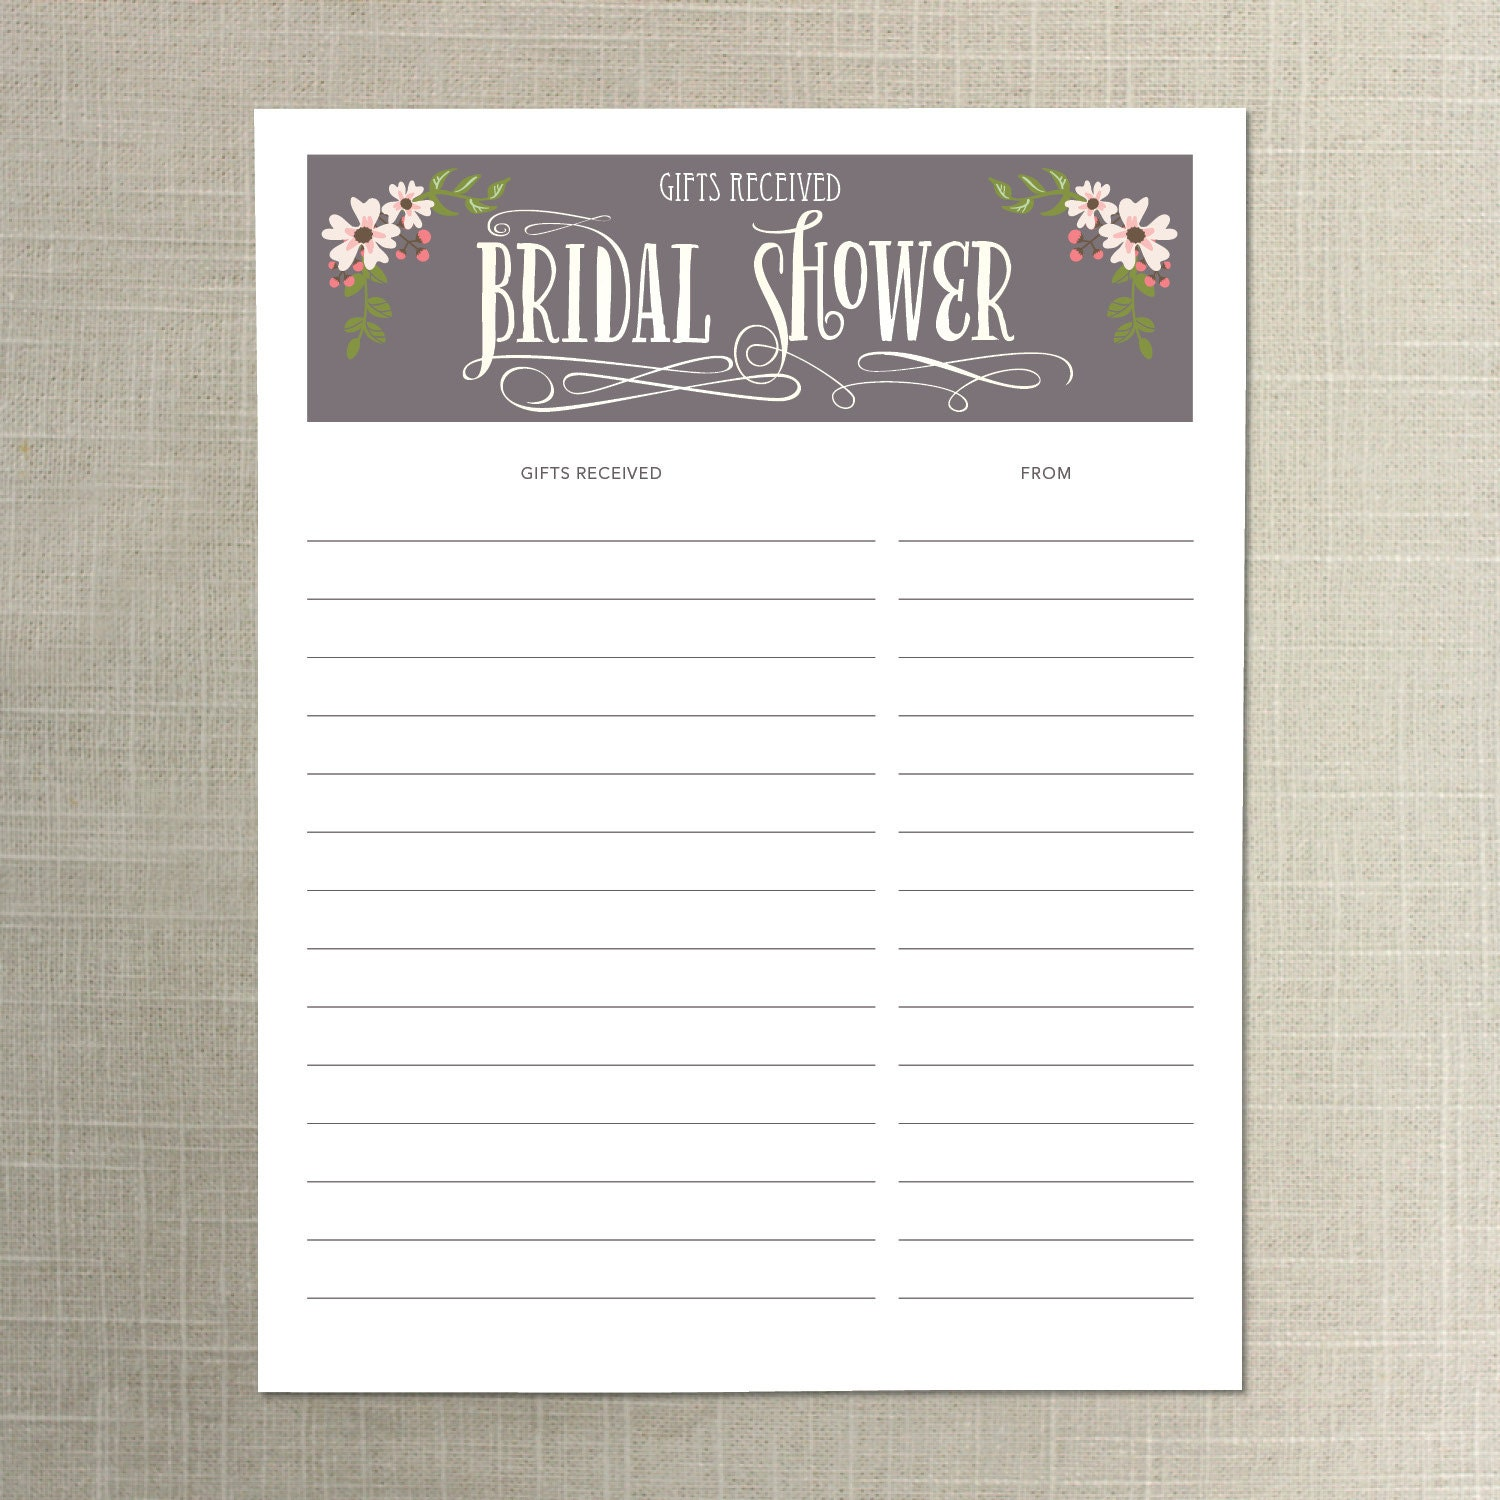 Template For Wedding Gift List : +Shower+Gift+List+Template Instant Download Bridal Shower Gift List ...